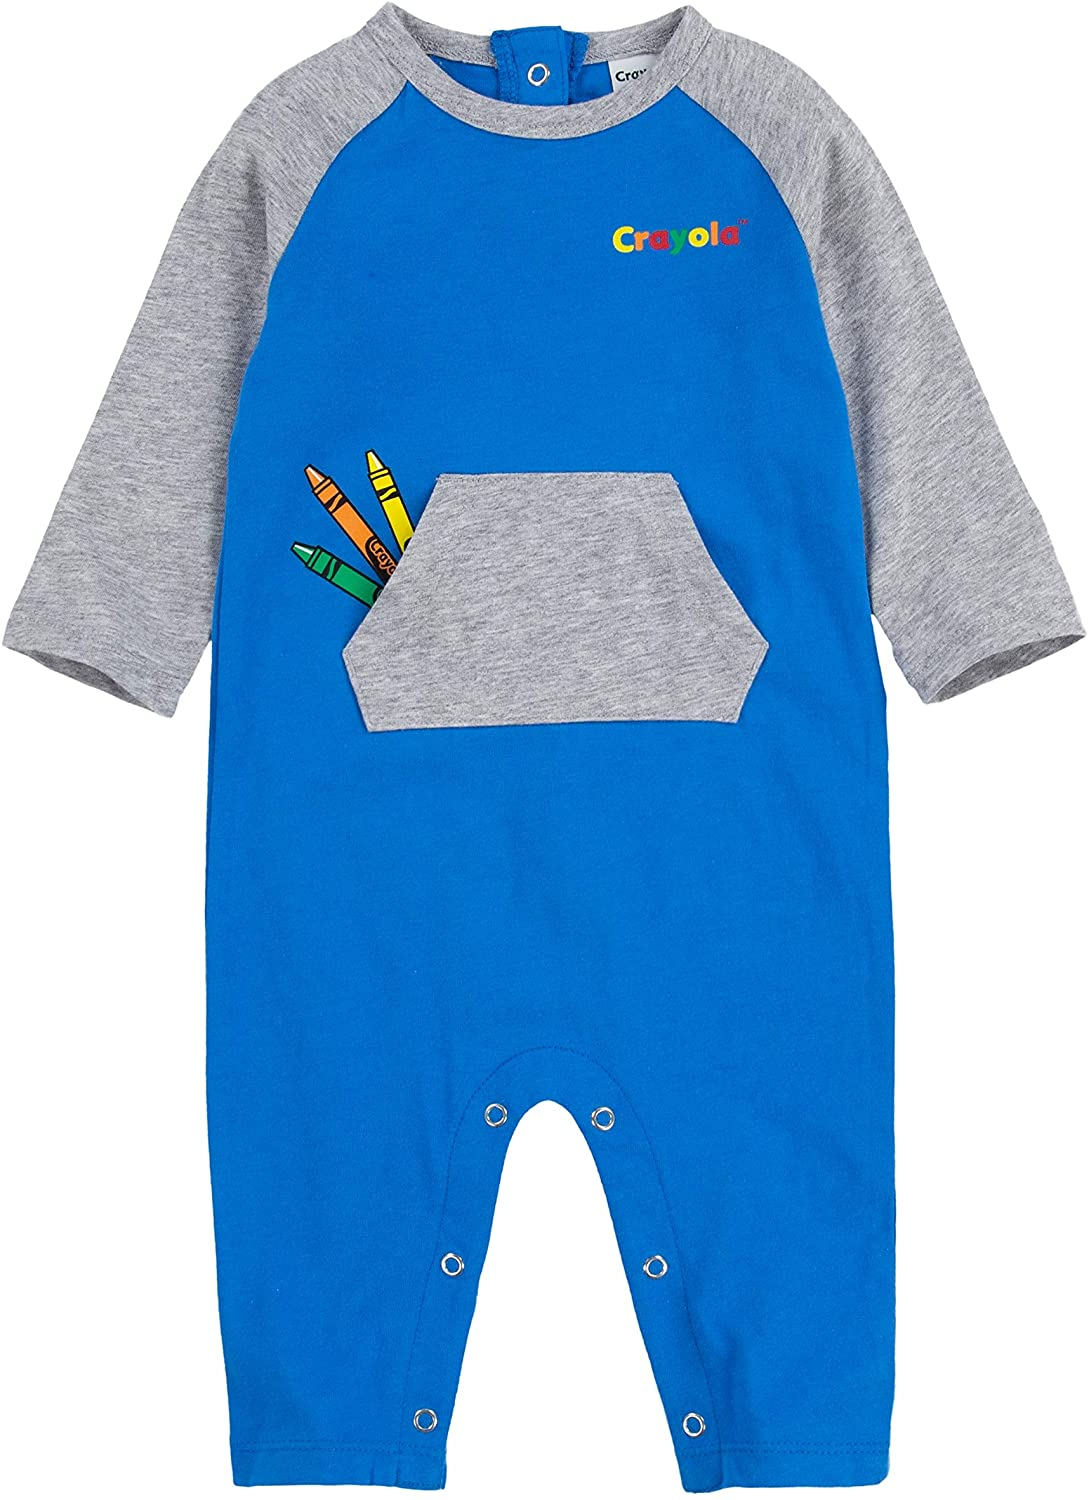 Crayola Childrens Apparel Baby Long Sleeve Coverall Bodysuit